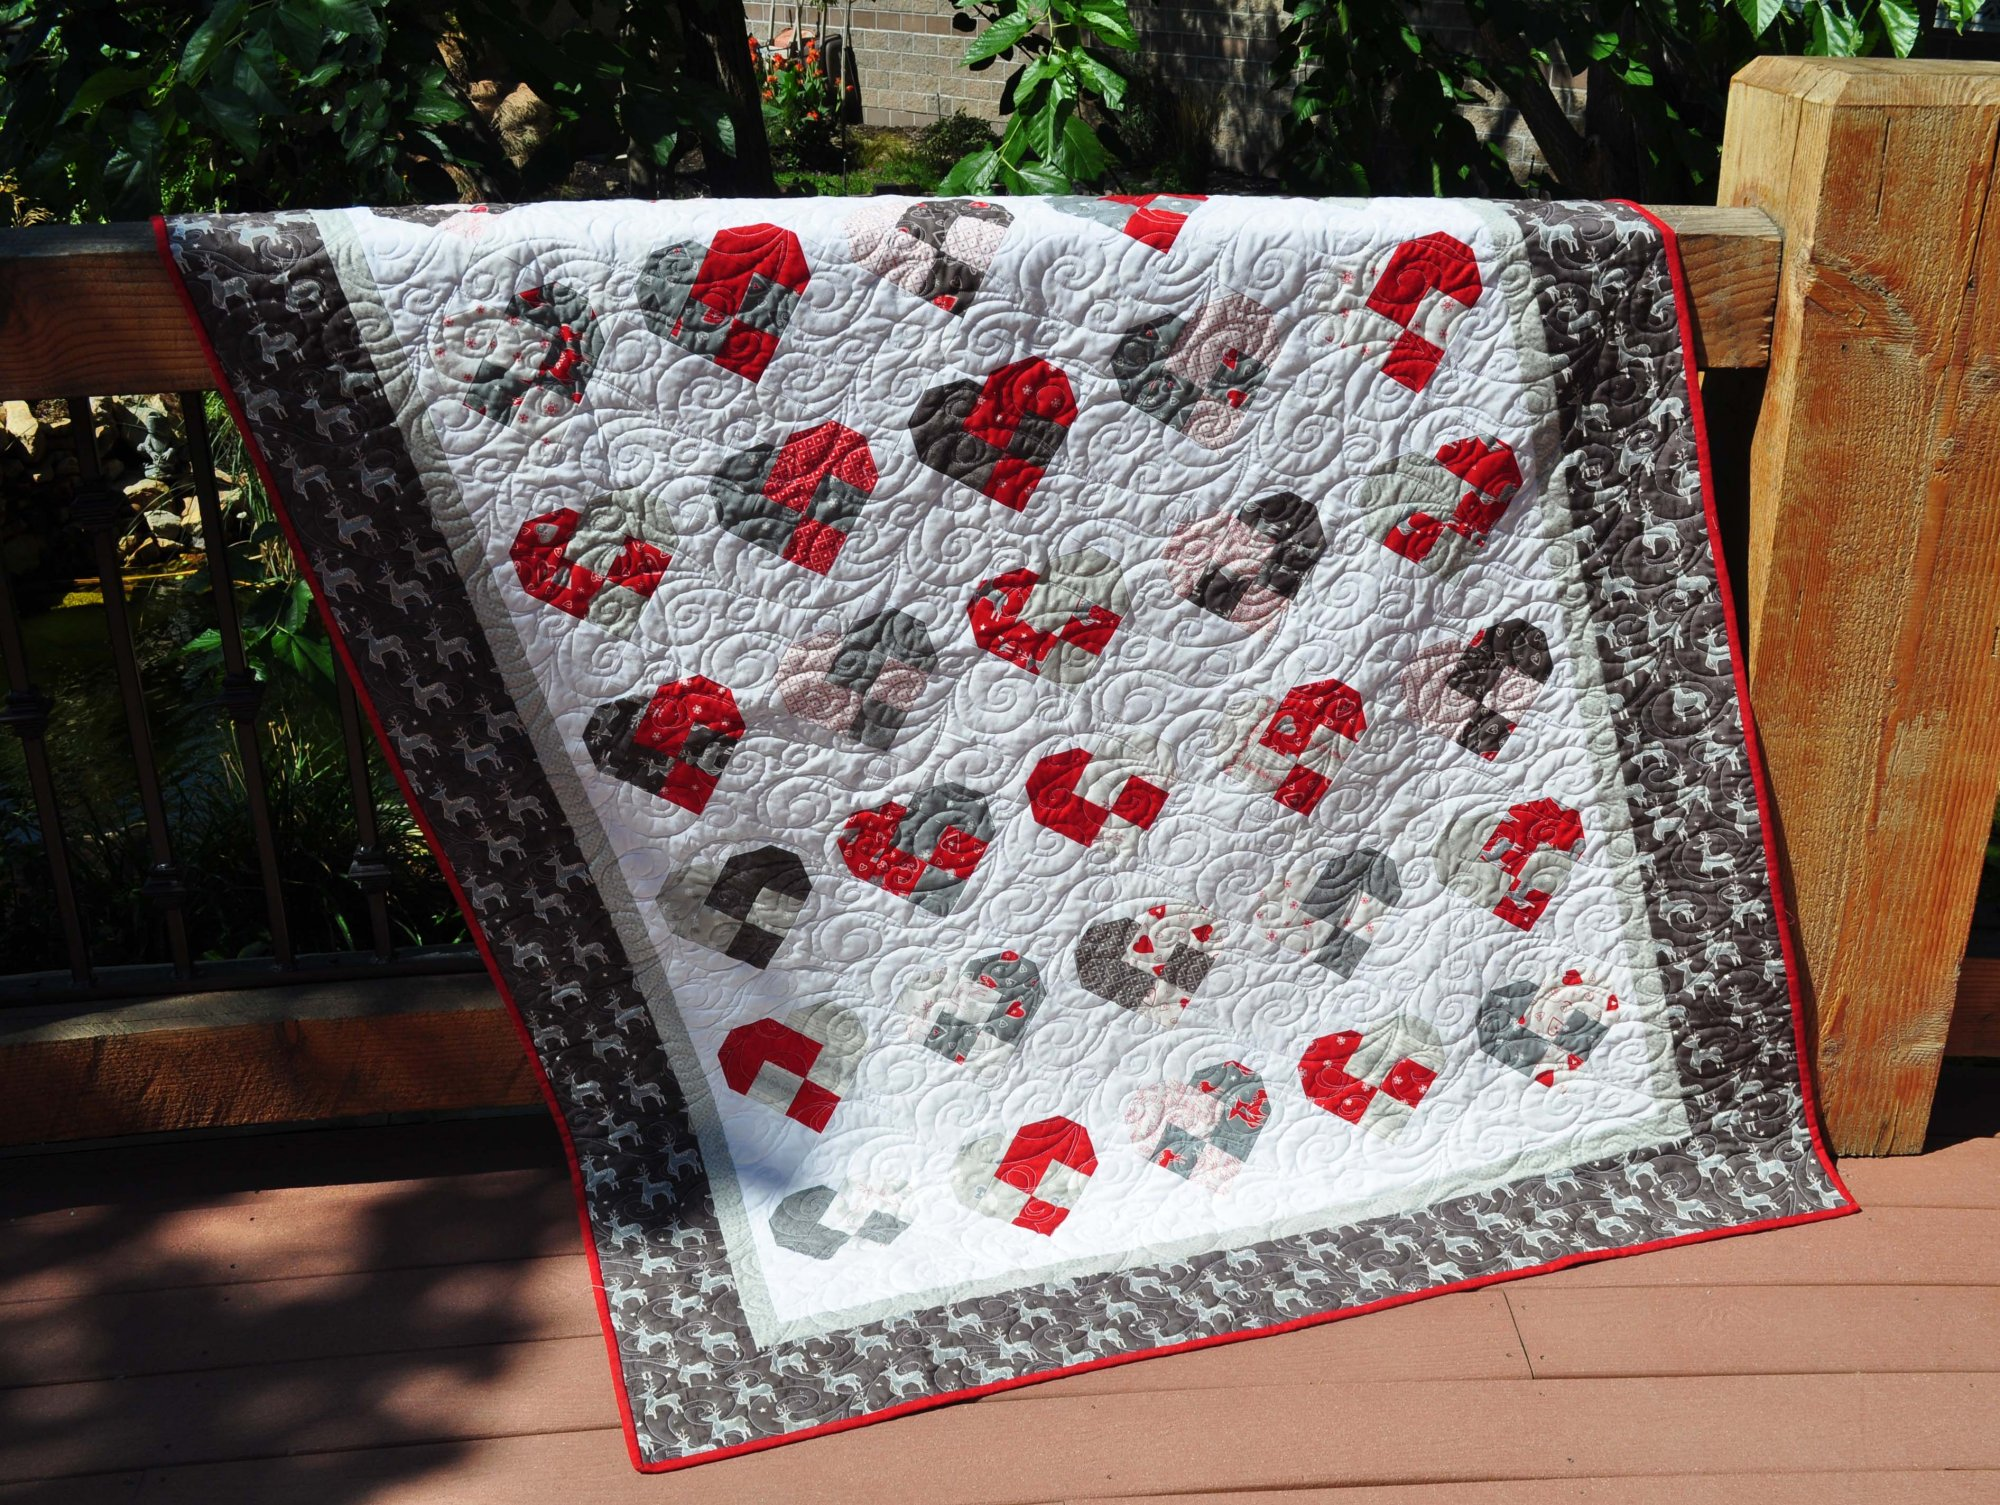 Sweetheart Christmas Quilt - 56 x 74